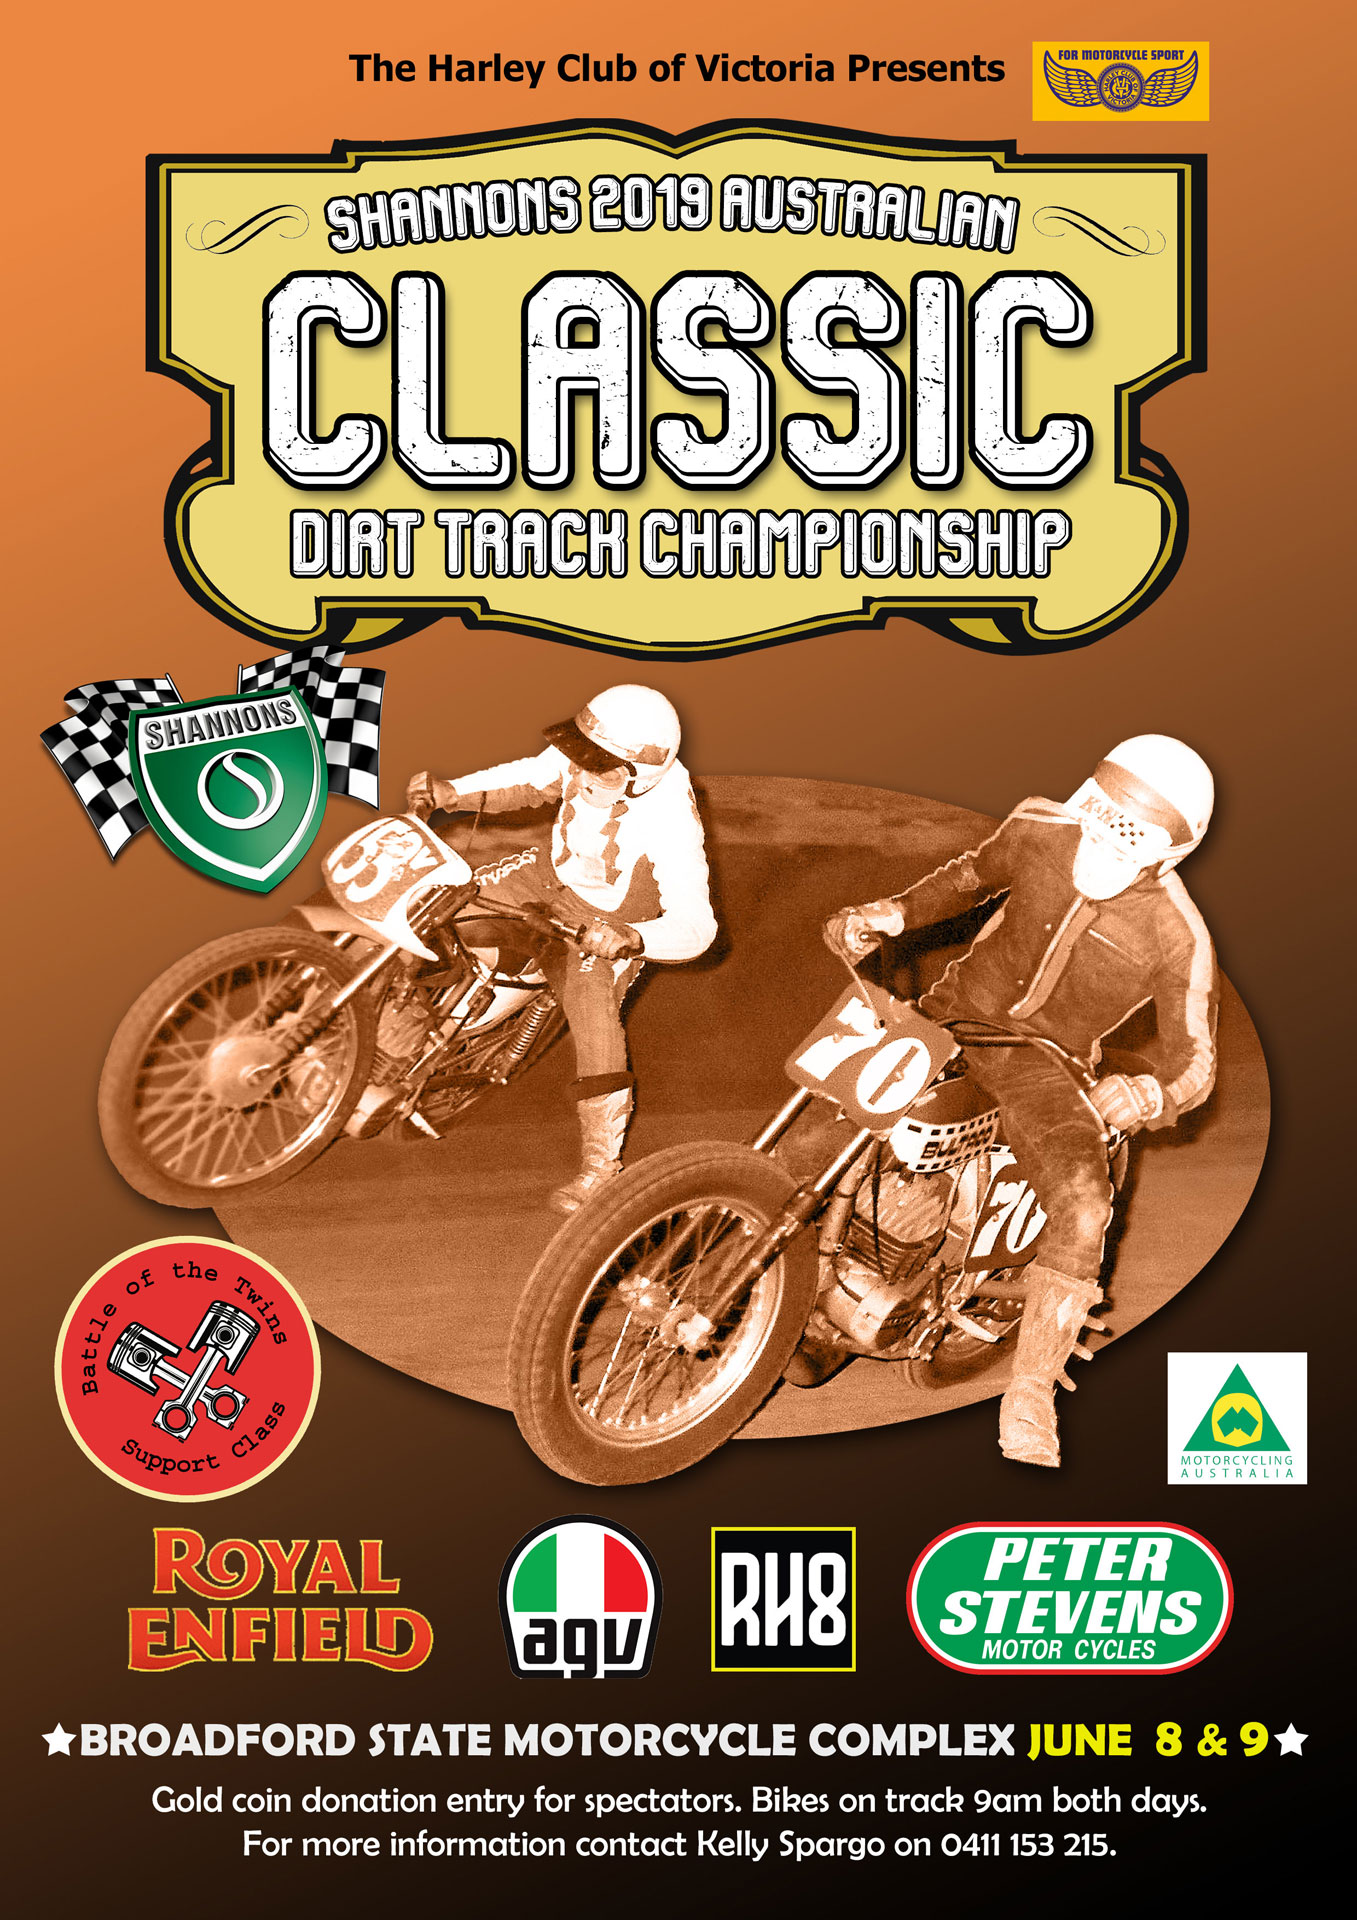 2019 Shannons Australian Classic Dirt Track Championships adds a Women's Class